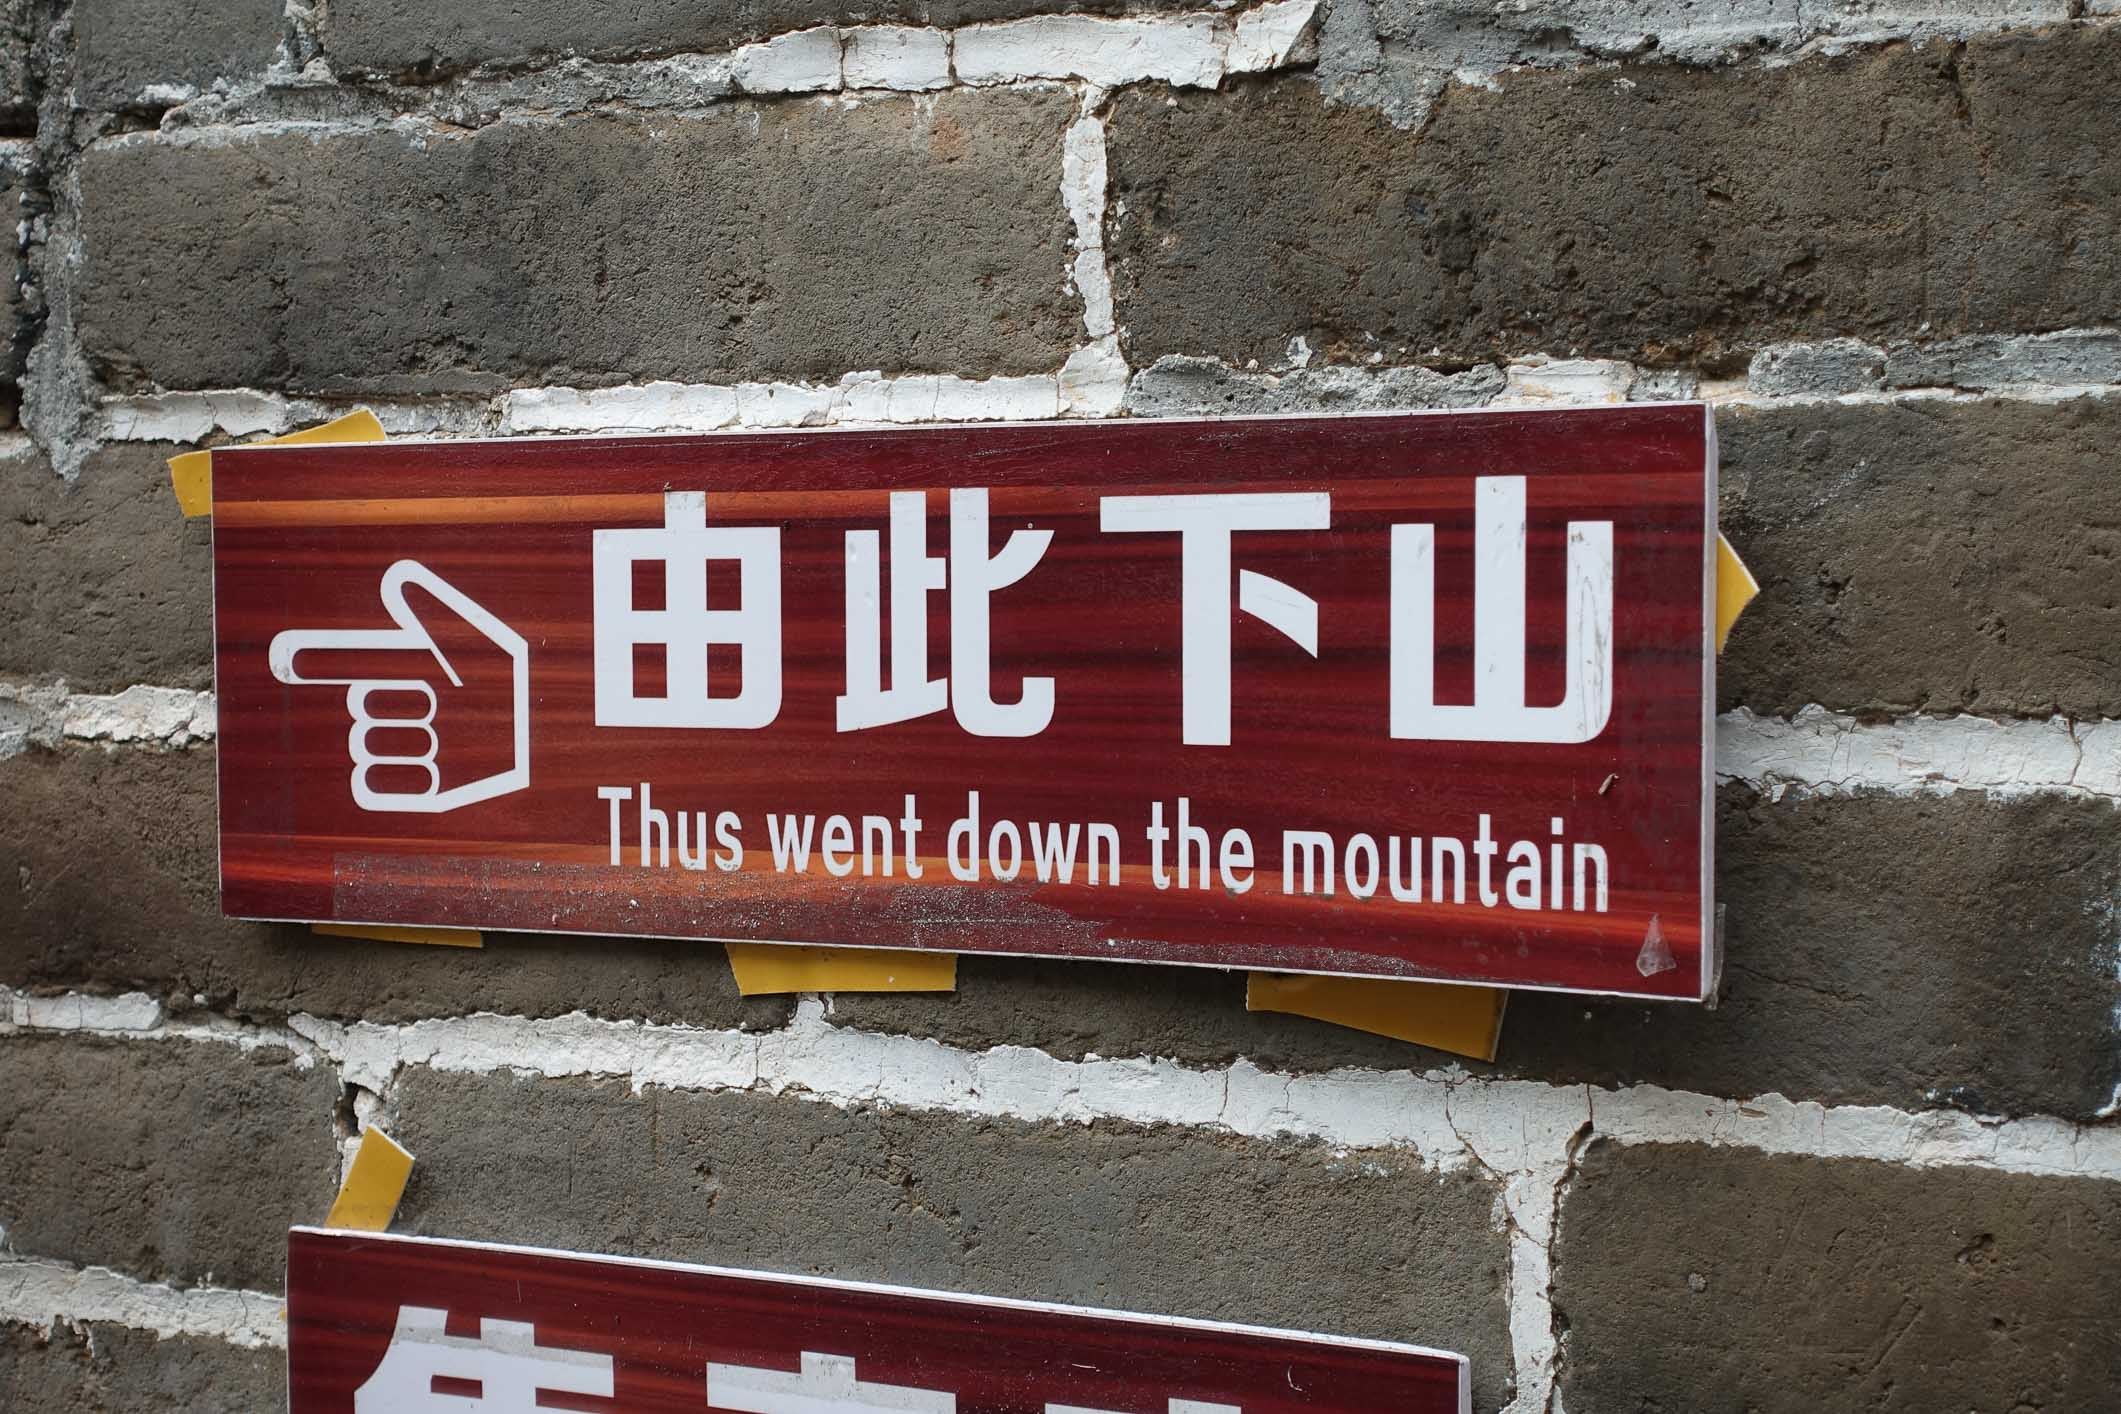 Funny signs in China